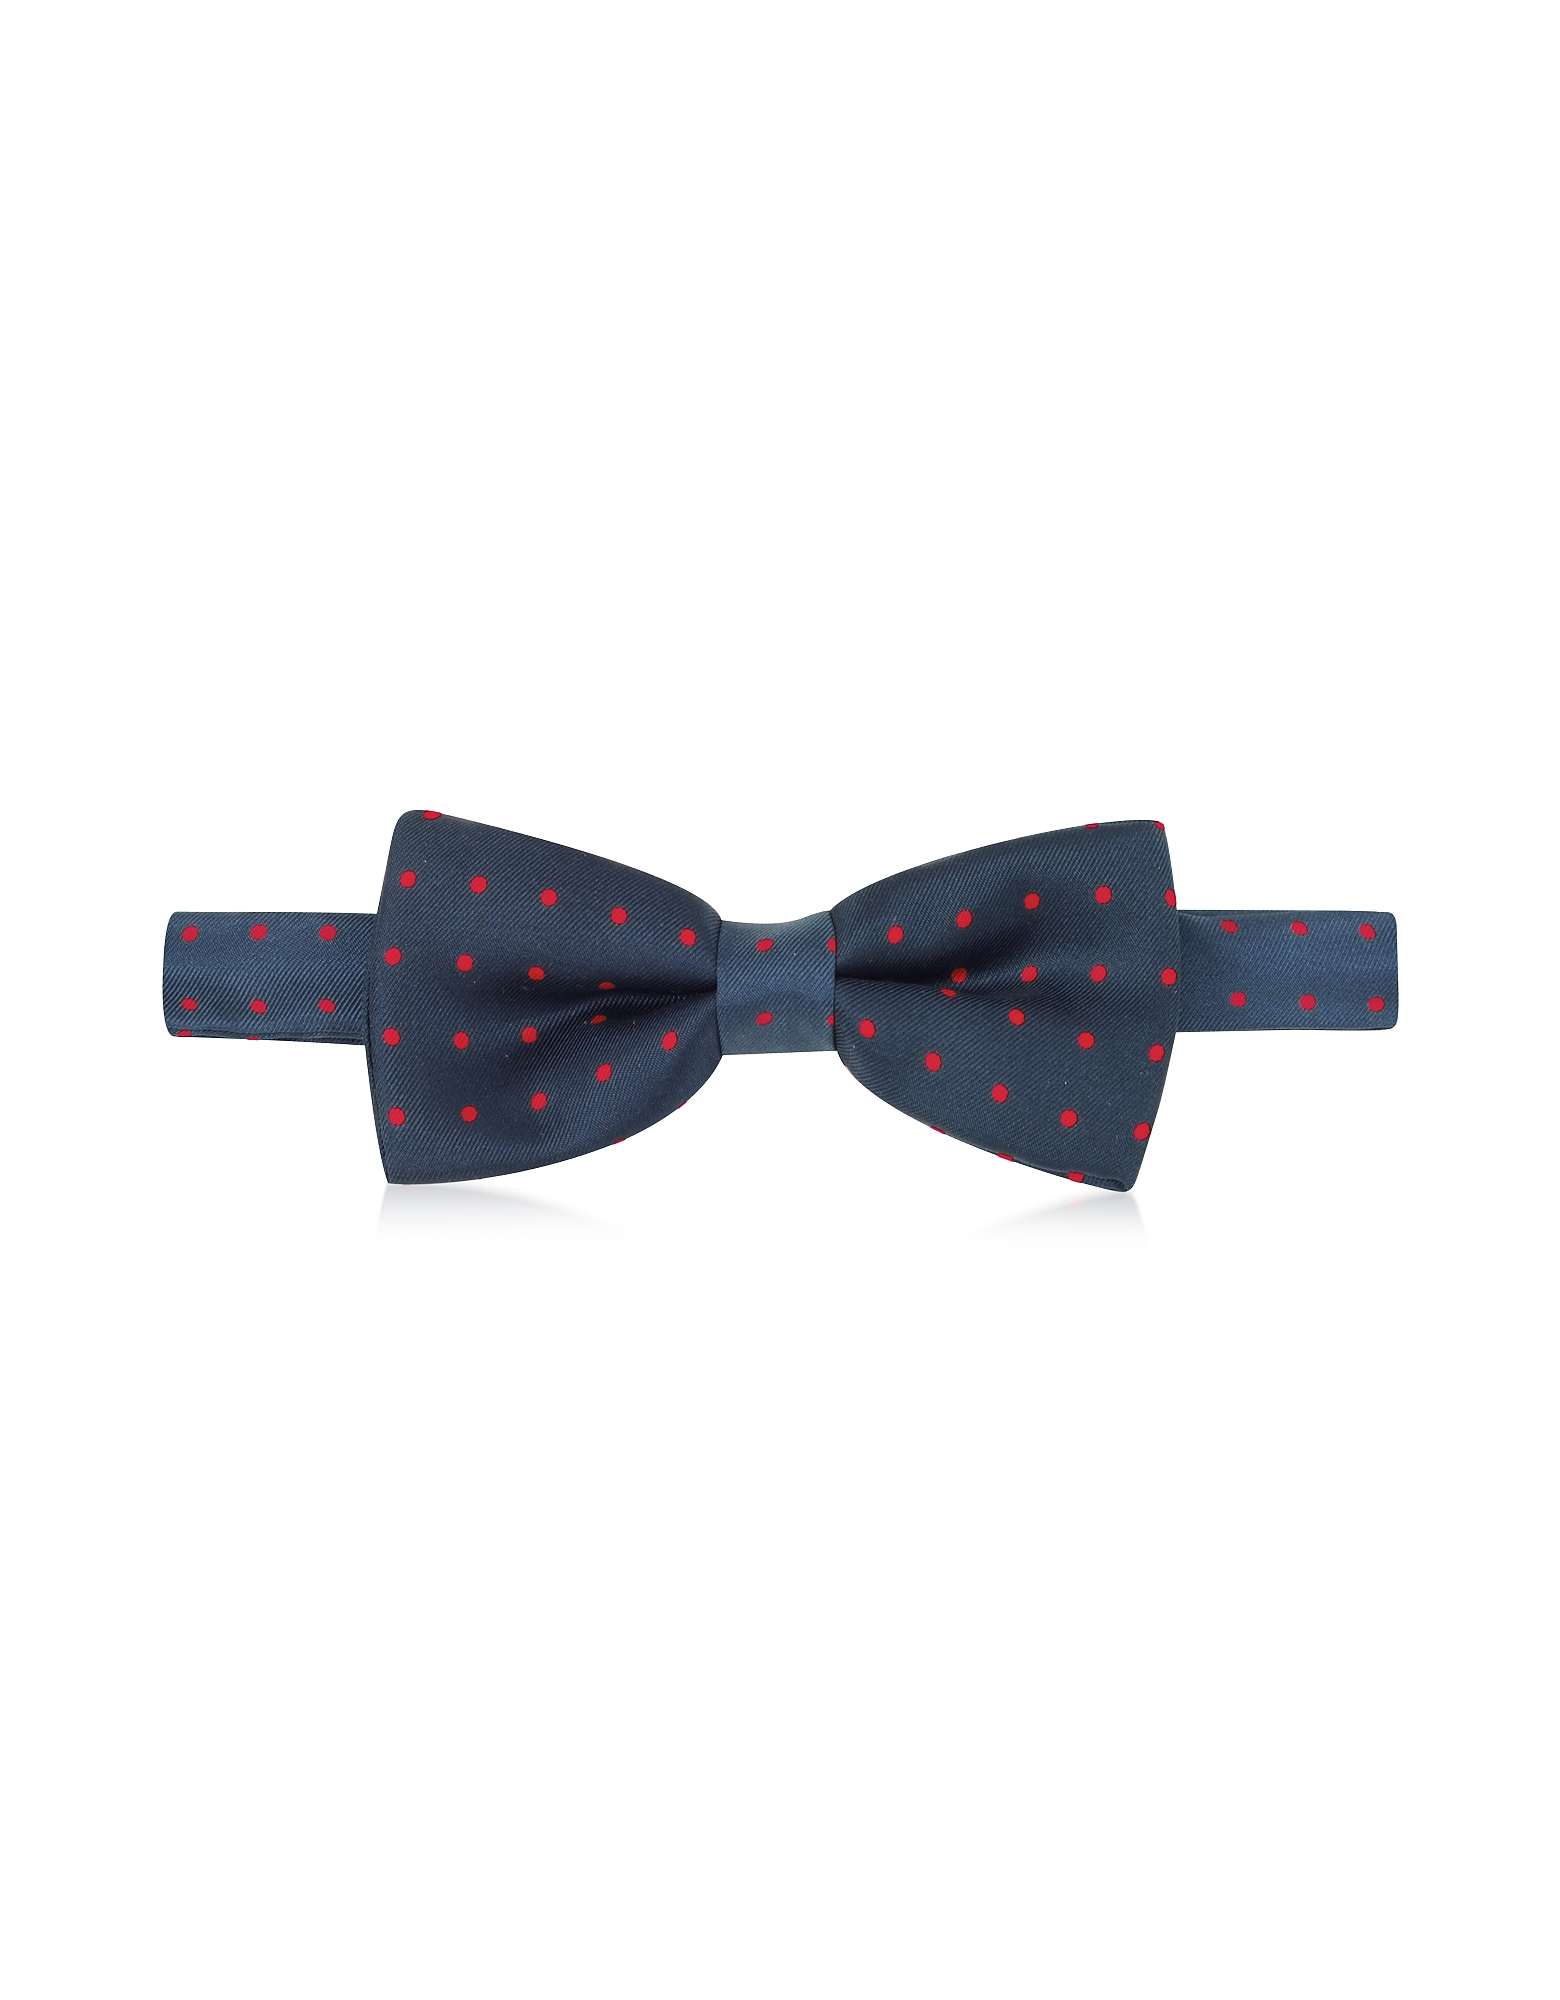 Forzieri Designer Bowties and Cummerbunds, Polkadot Pre-tied Bowtie